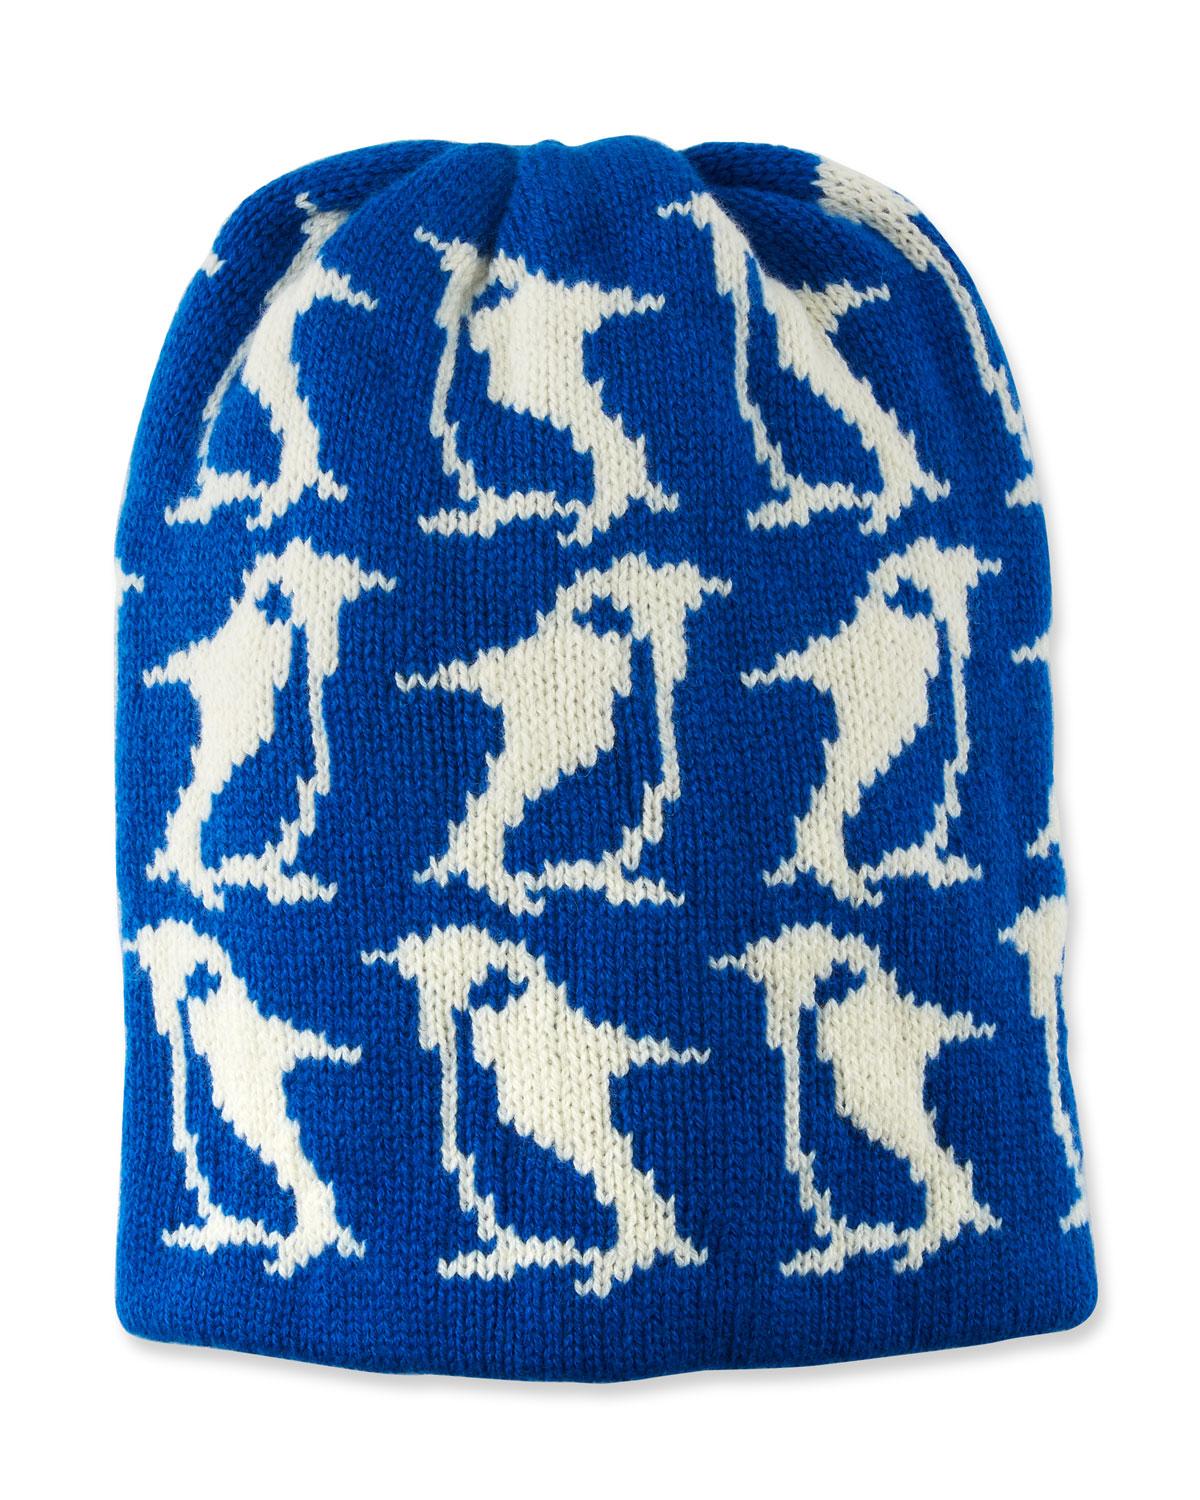 wool-cashmere-penguin-intarsia-beanie-hat by moncler-grenoble